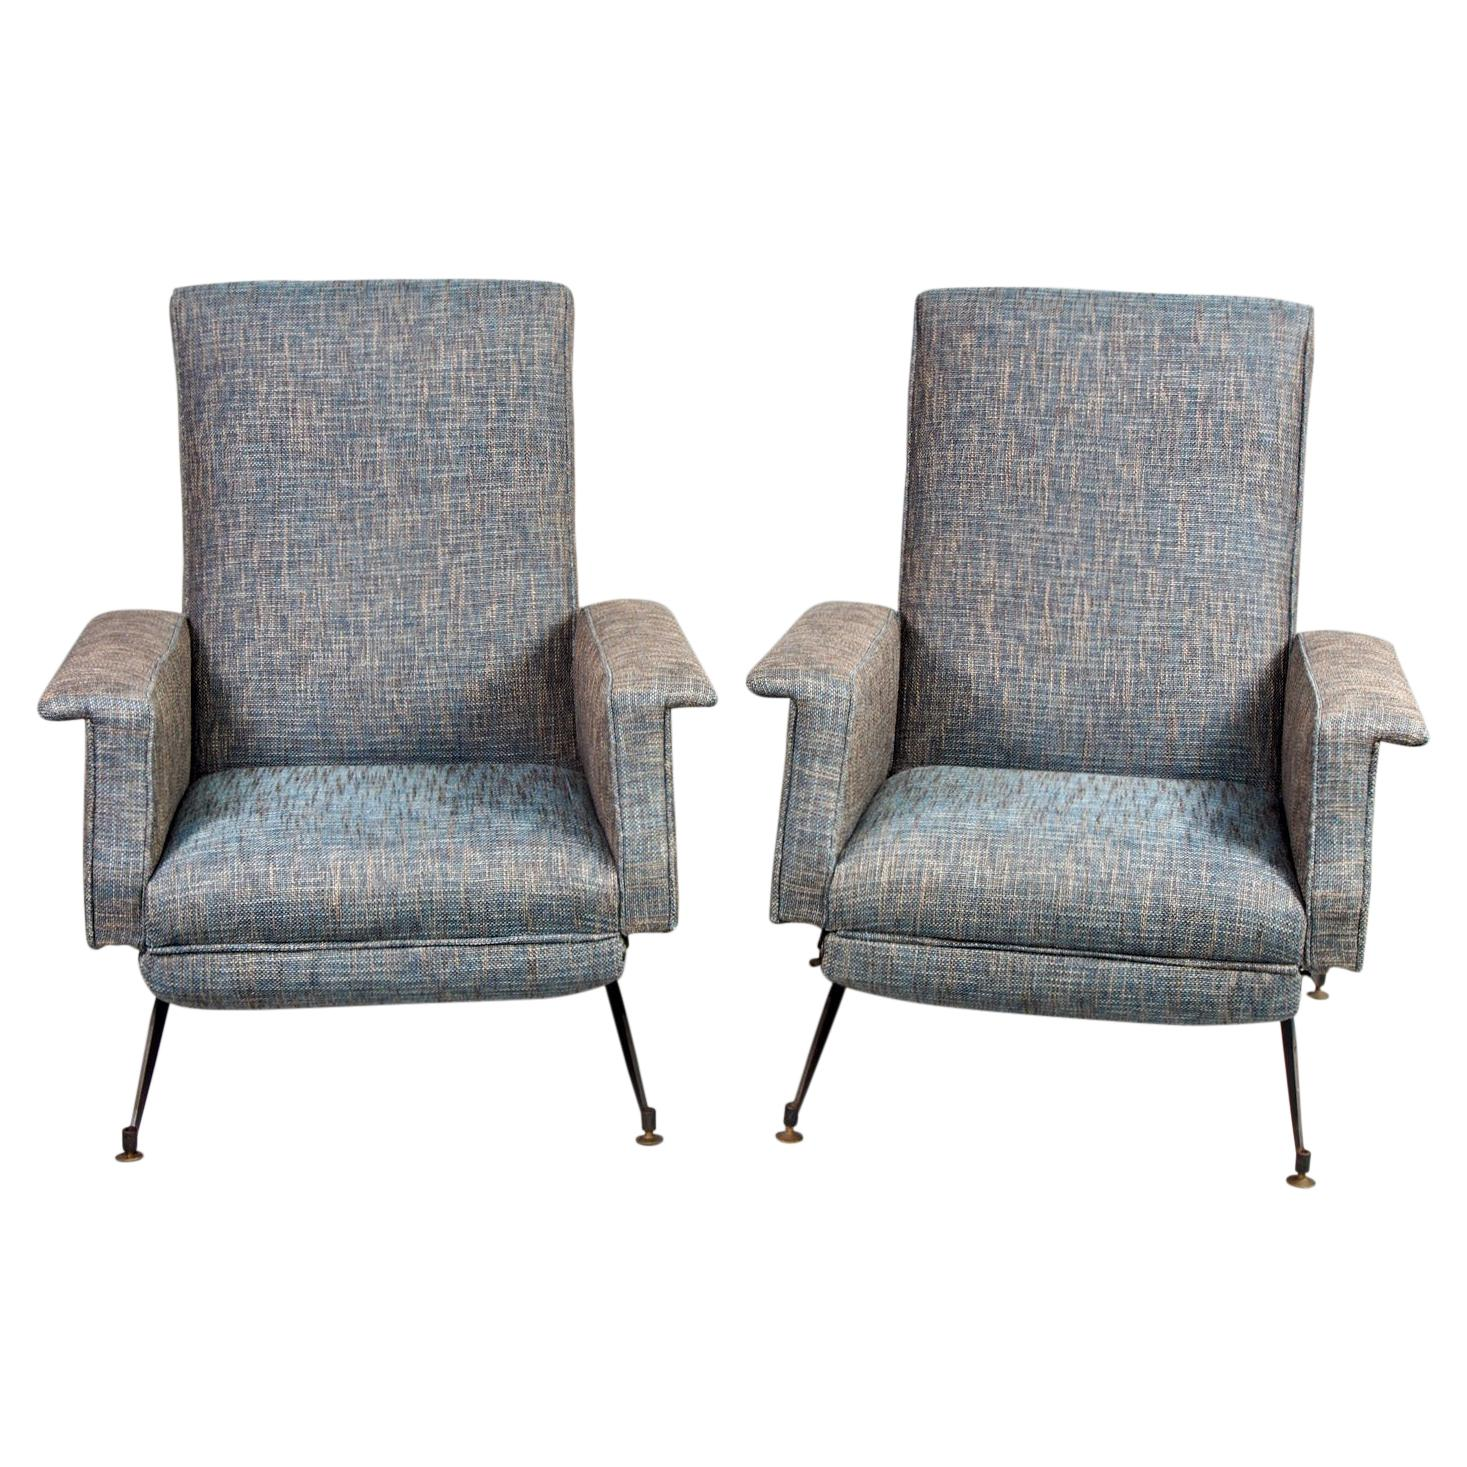 Pair of Italian Midcentury Lounge Chairs with New Tweed Upholstery